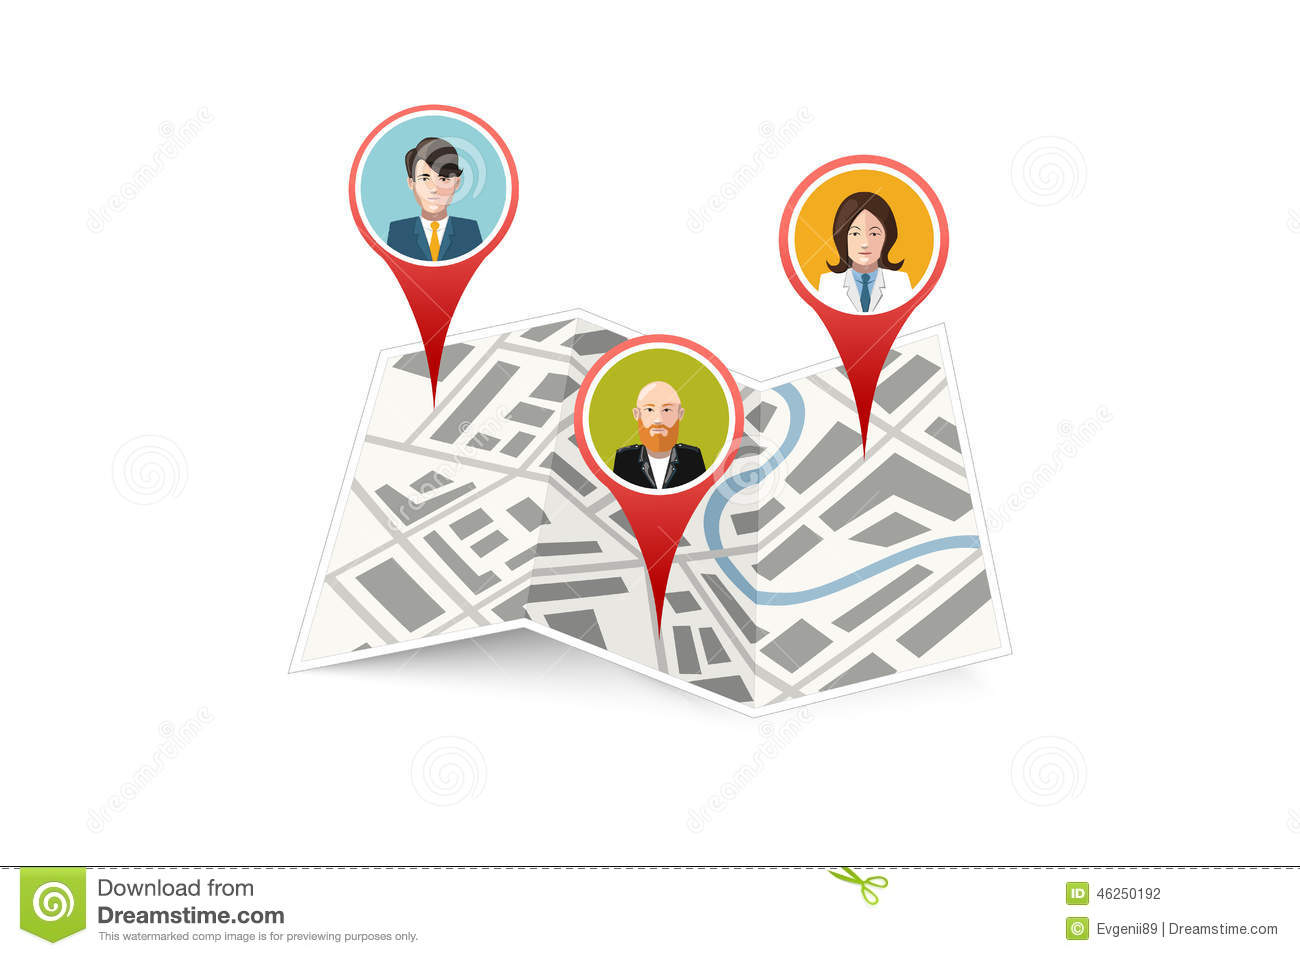 Icono Ubicacion Google Maps Png 3 Png Image: People On Map Gps Location Icon Isolated Stock Vector